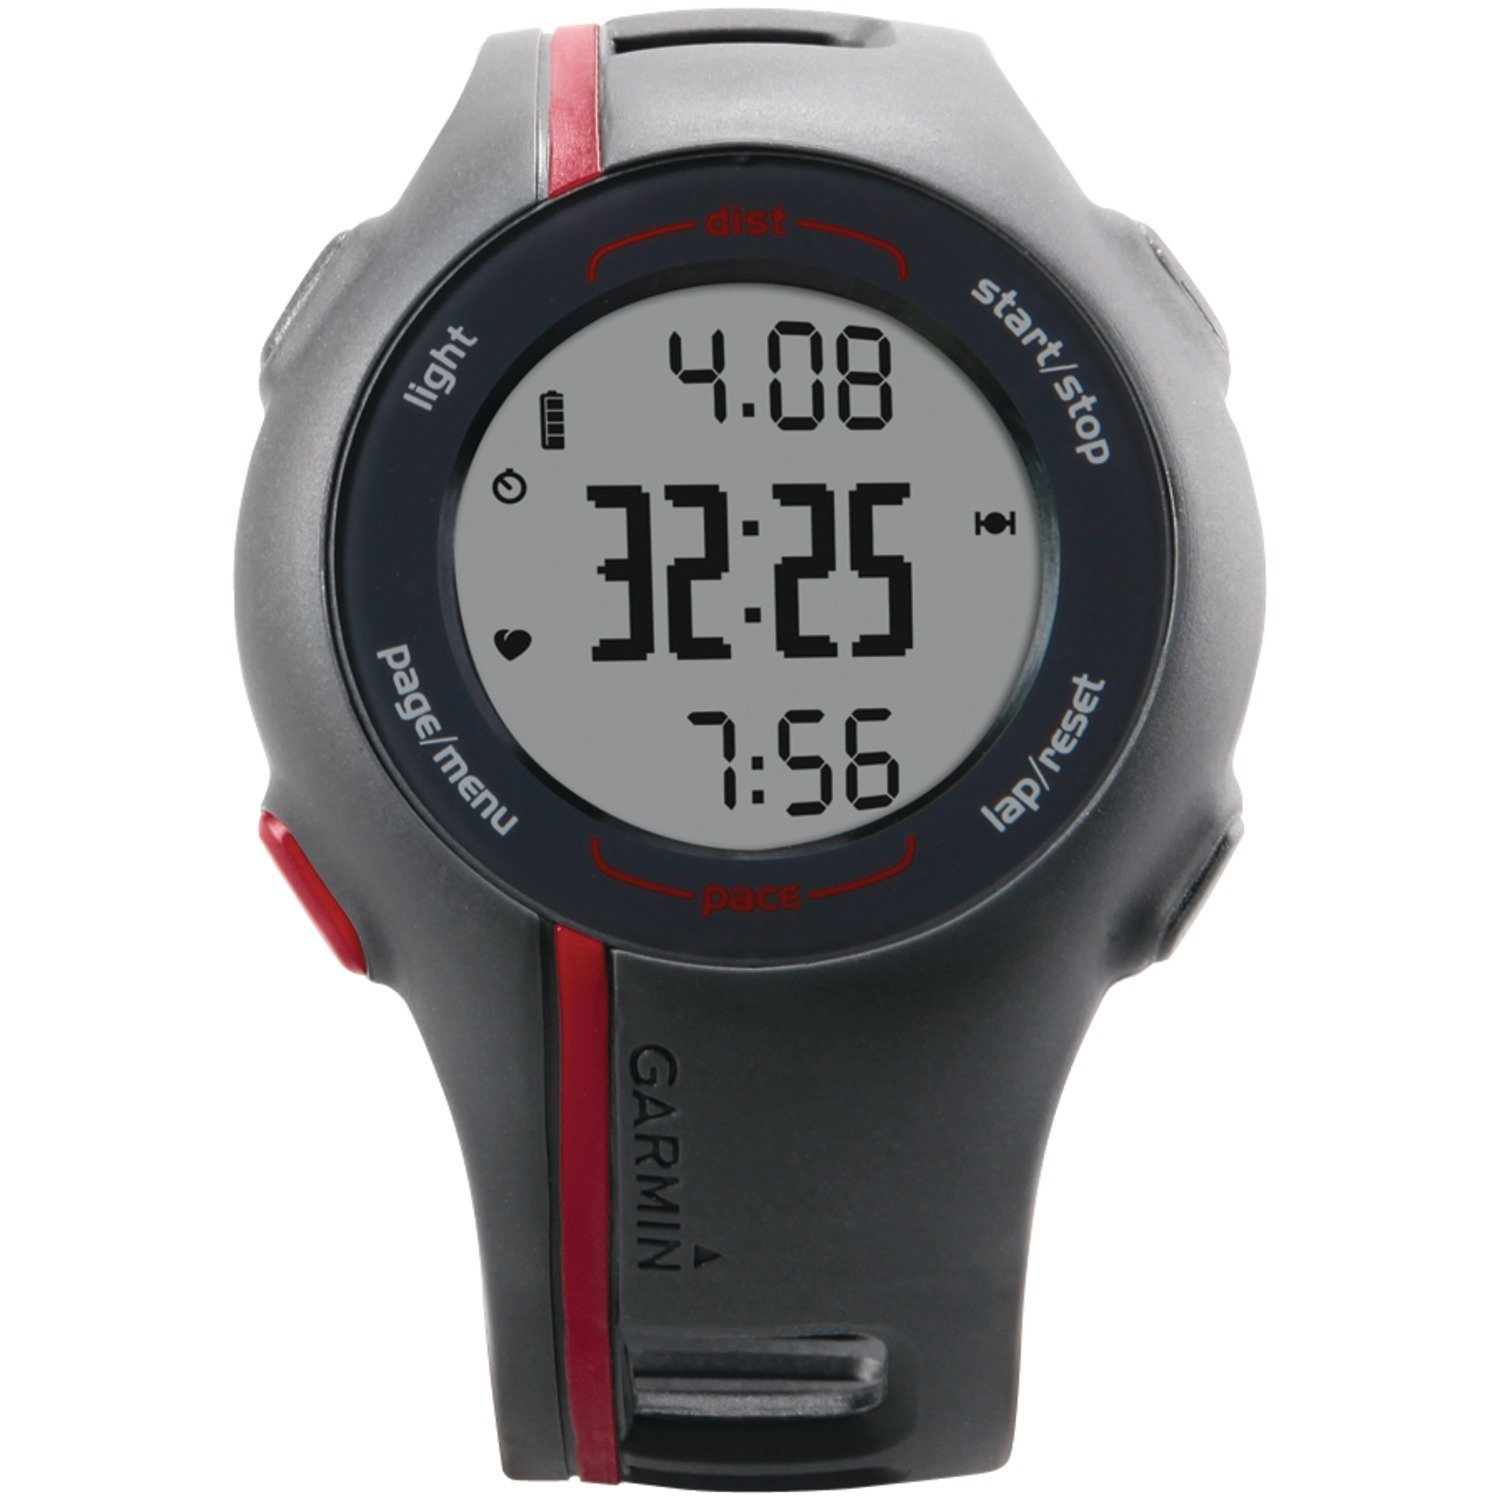 Garmin forerunner 110 watch with gps and heart rate monitor review sporting goods for Garmin watches